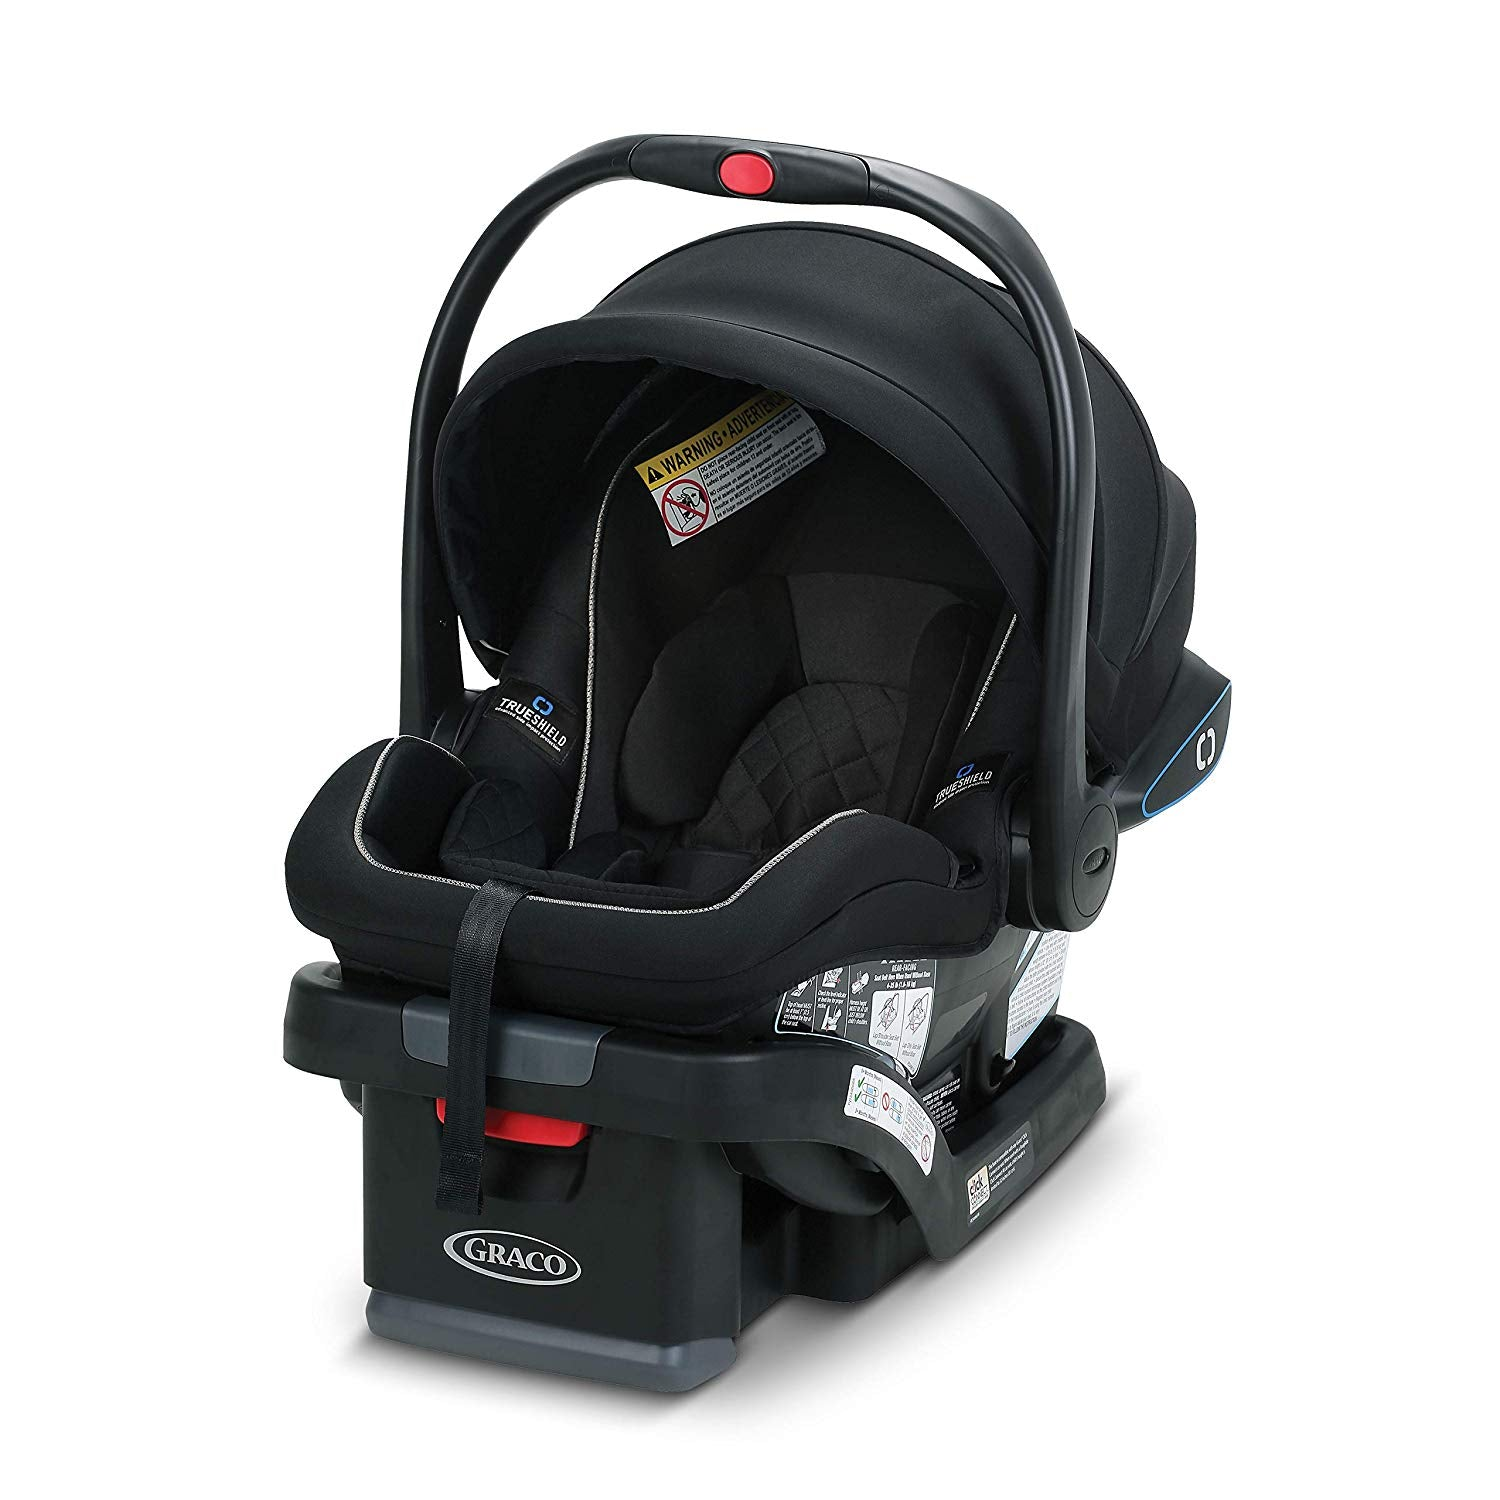 Graco SnugRide SnugLock 35 LX Infant Car Seat - Baby World Inc